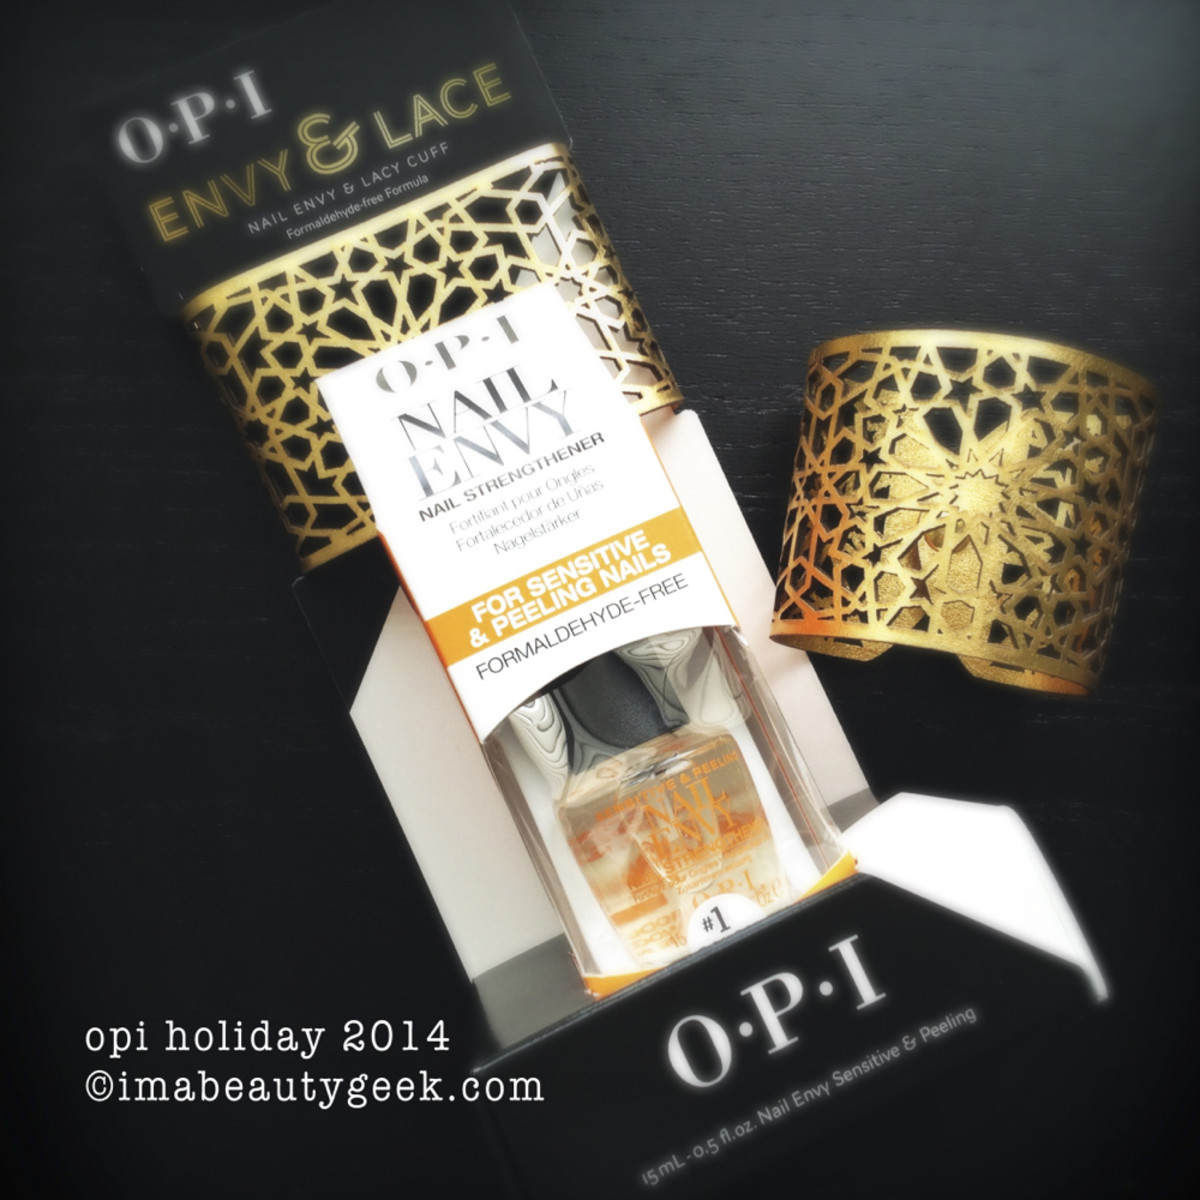 OPI Envy and Lace_1